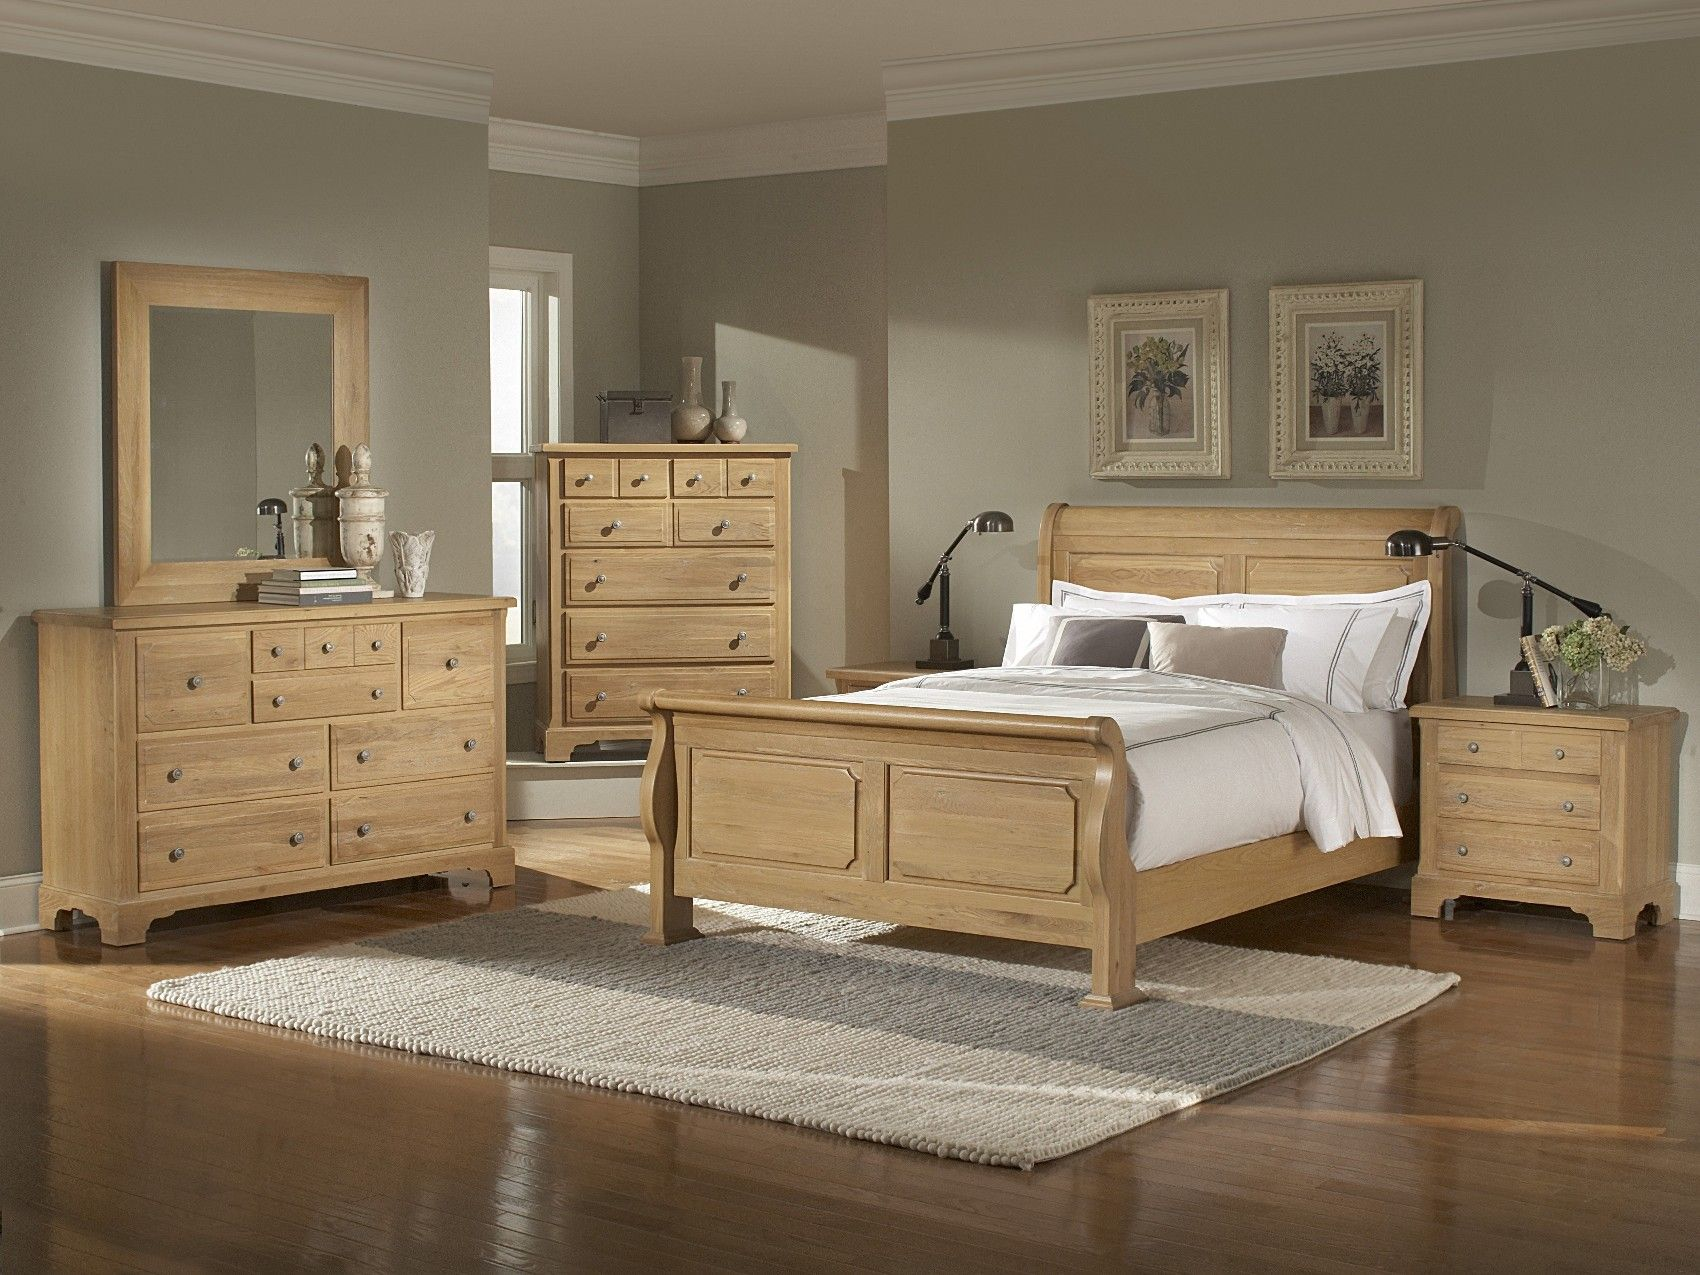 Pleasing Oak Bedroom Furniture Sets Washed Oak Queen Sleigh Home Interior And Landscaping Transignezvosmurscom